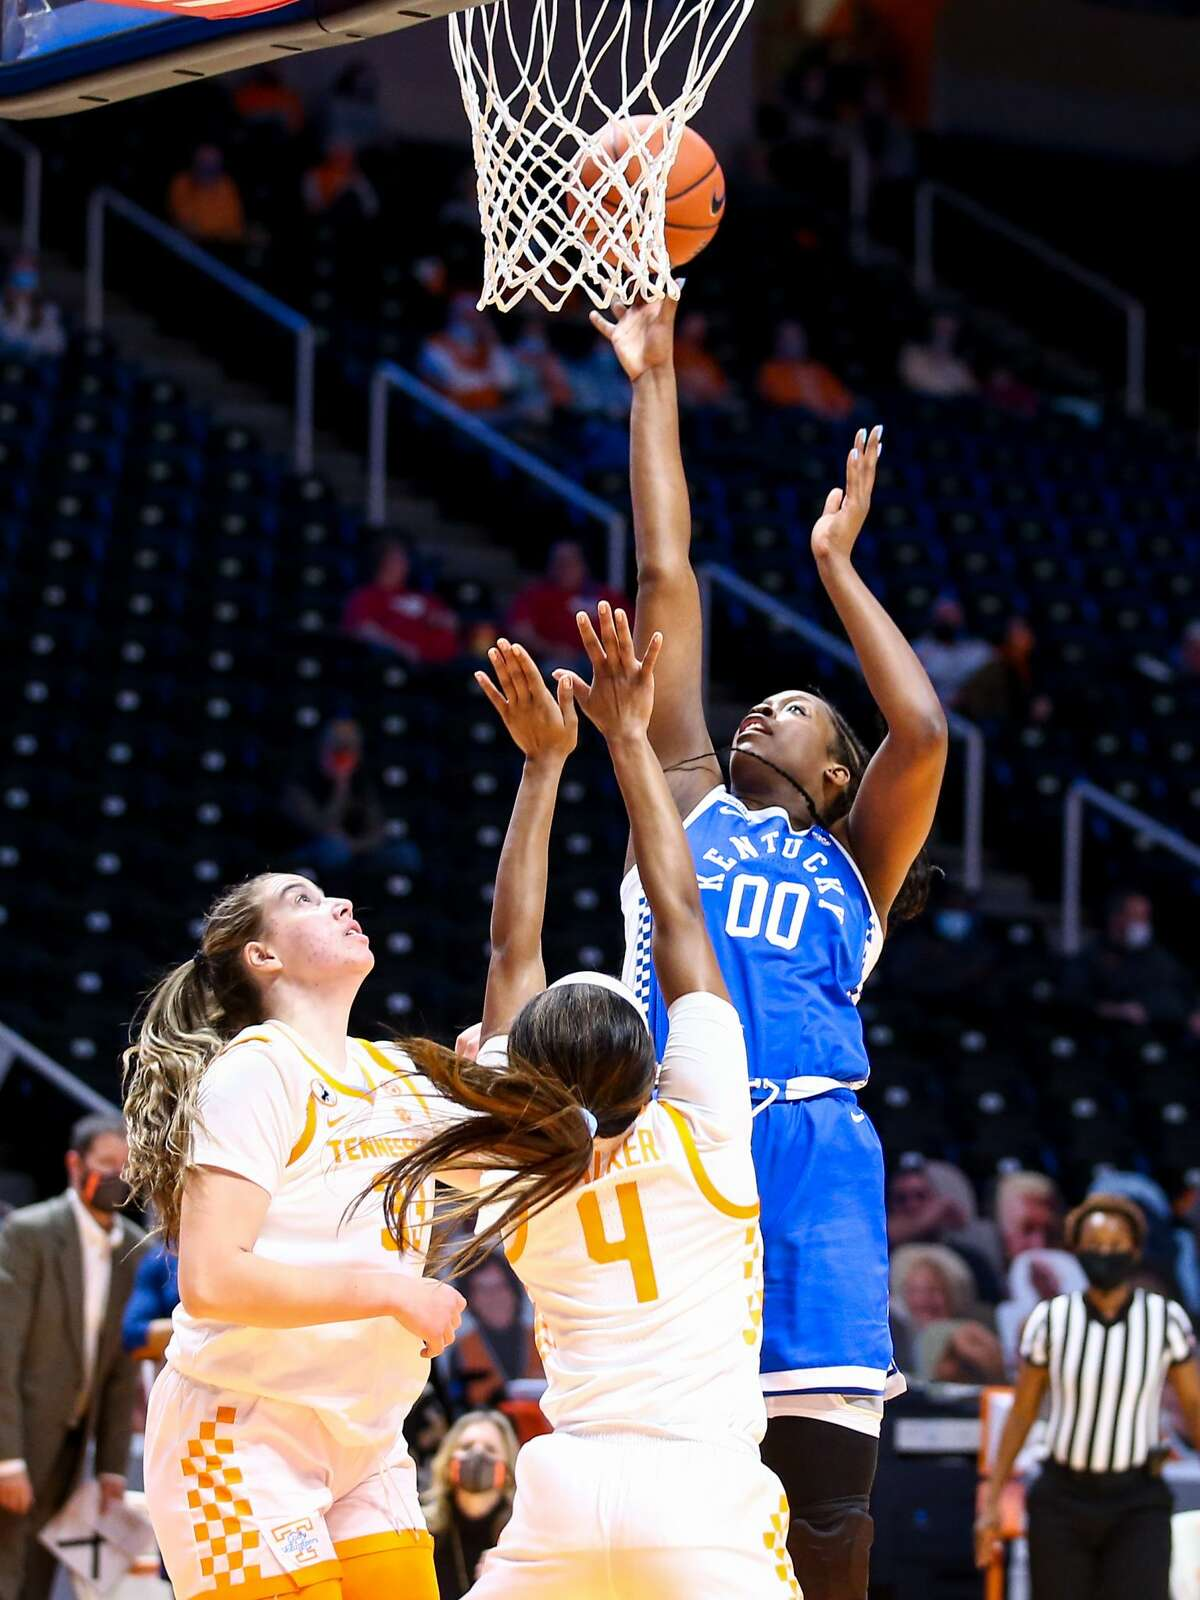 Olivia Owens in the Wildcats' 70-53 SEC loss to Tennessee on Jan. 24. The 20th-ranked Wildcats upset the 16th-ranked Vols on Thursday, 71-56. Photo by Eddie Justice | UK Athletics